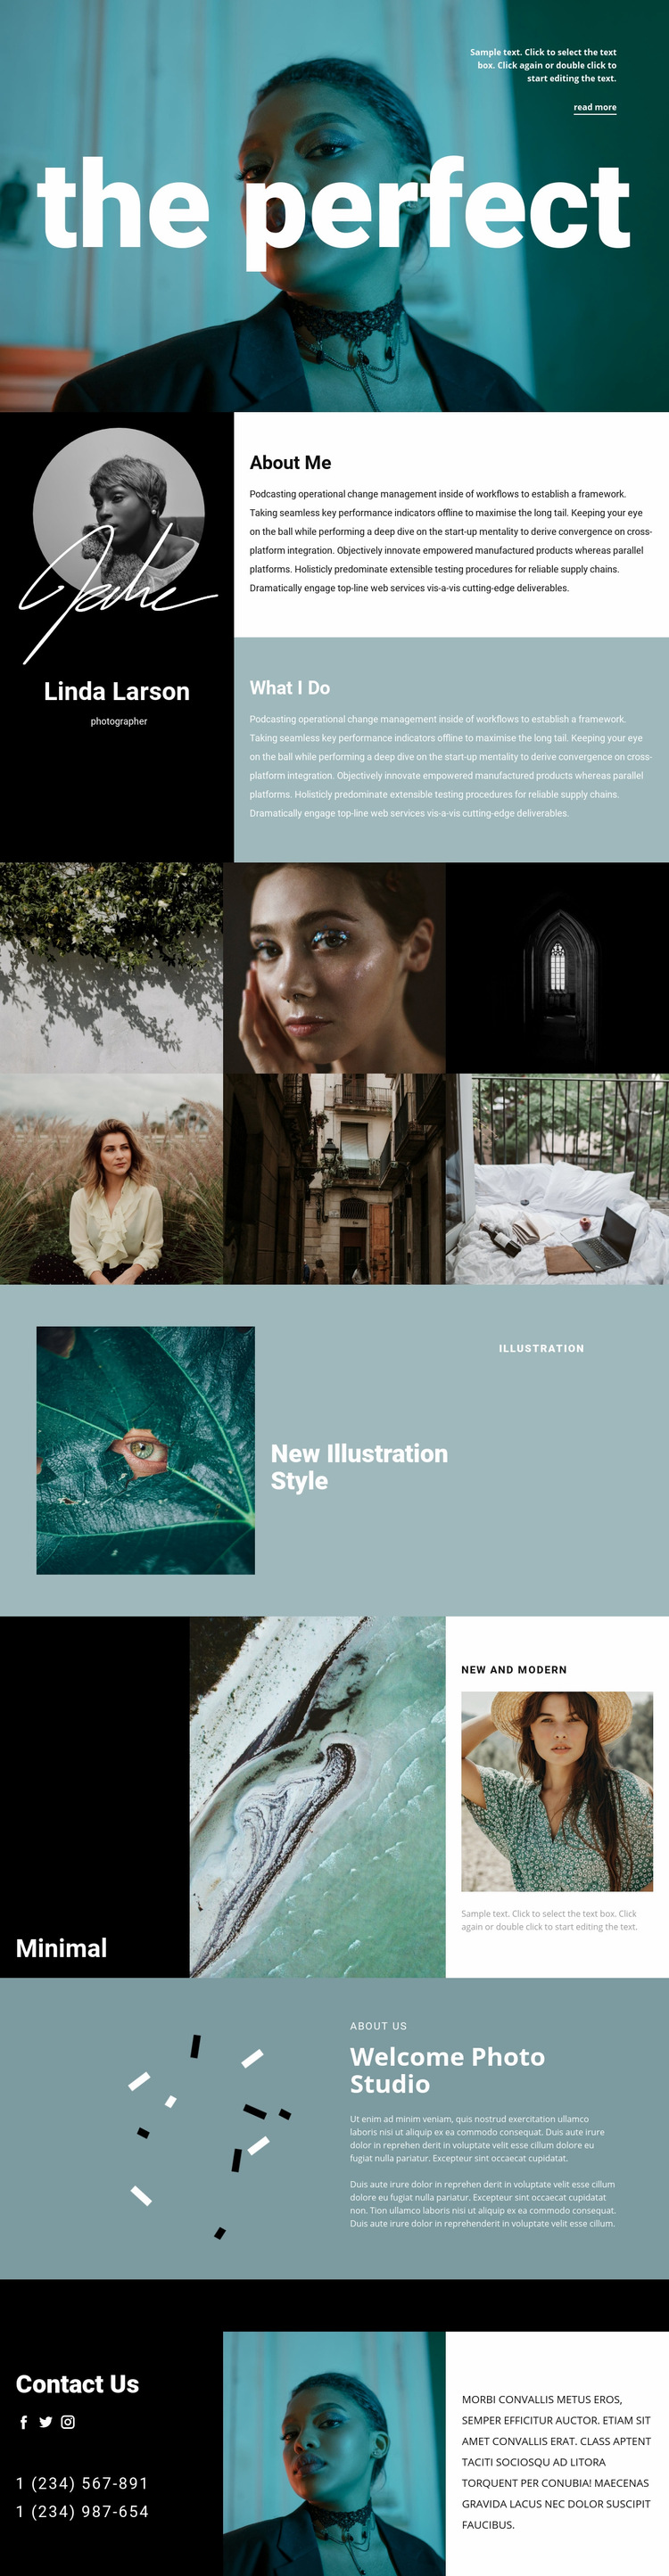 Fashion photographer resume  Web Page Design